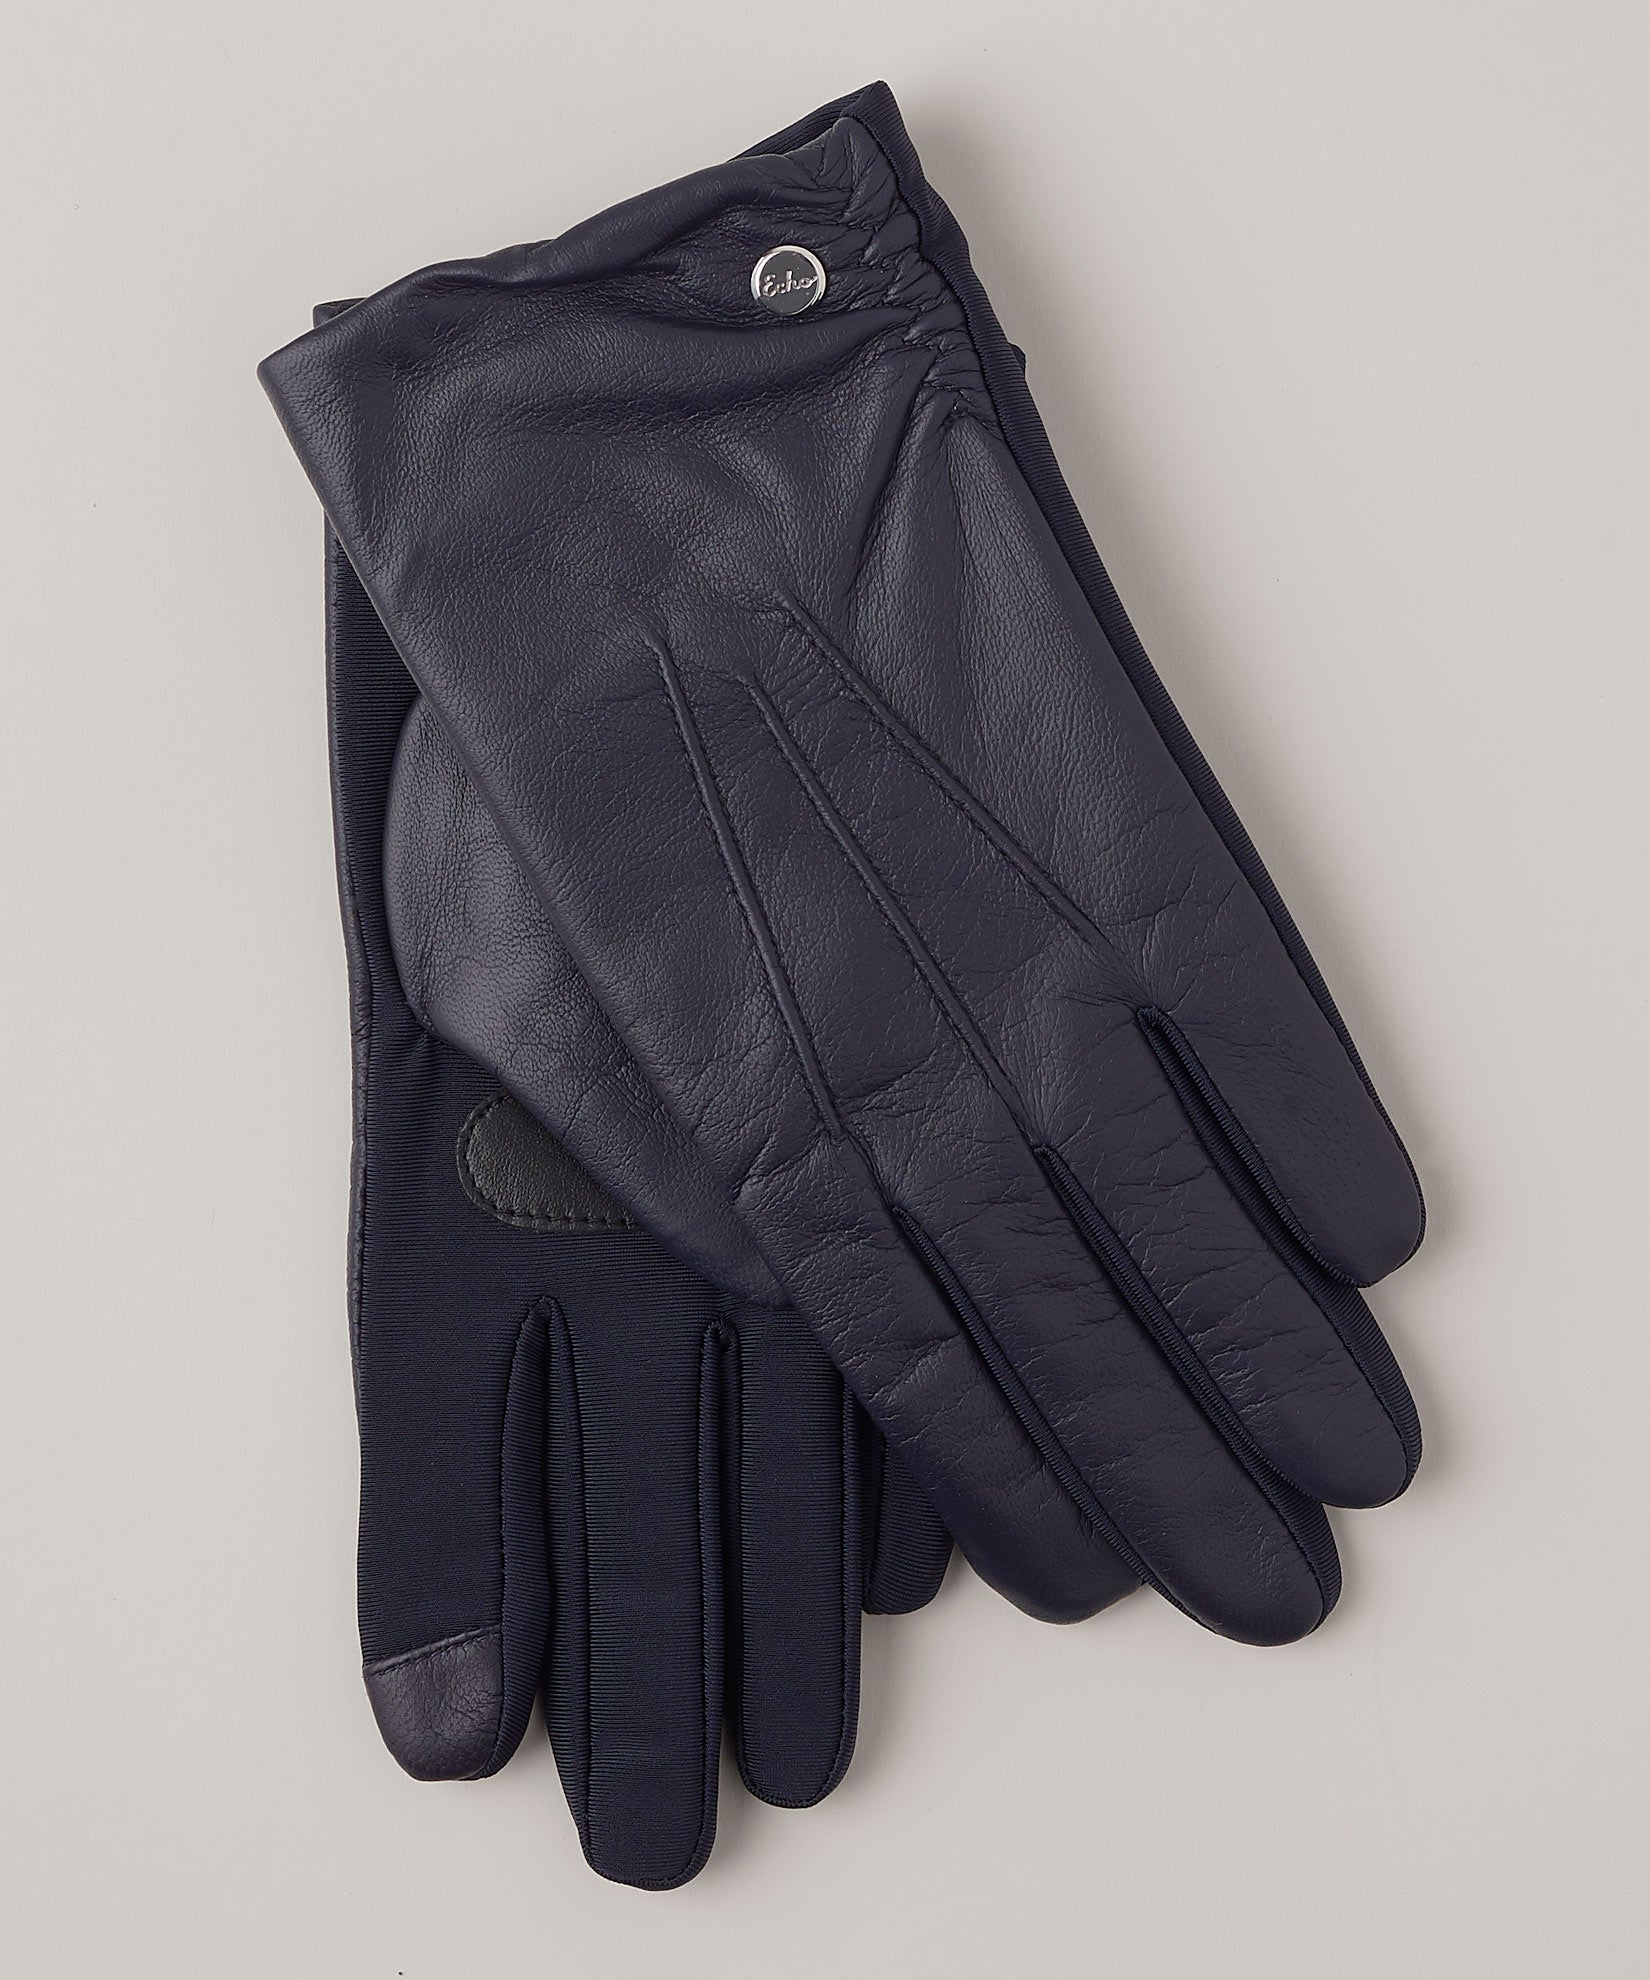 Navy - Classic Leather Superfit Glove